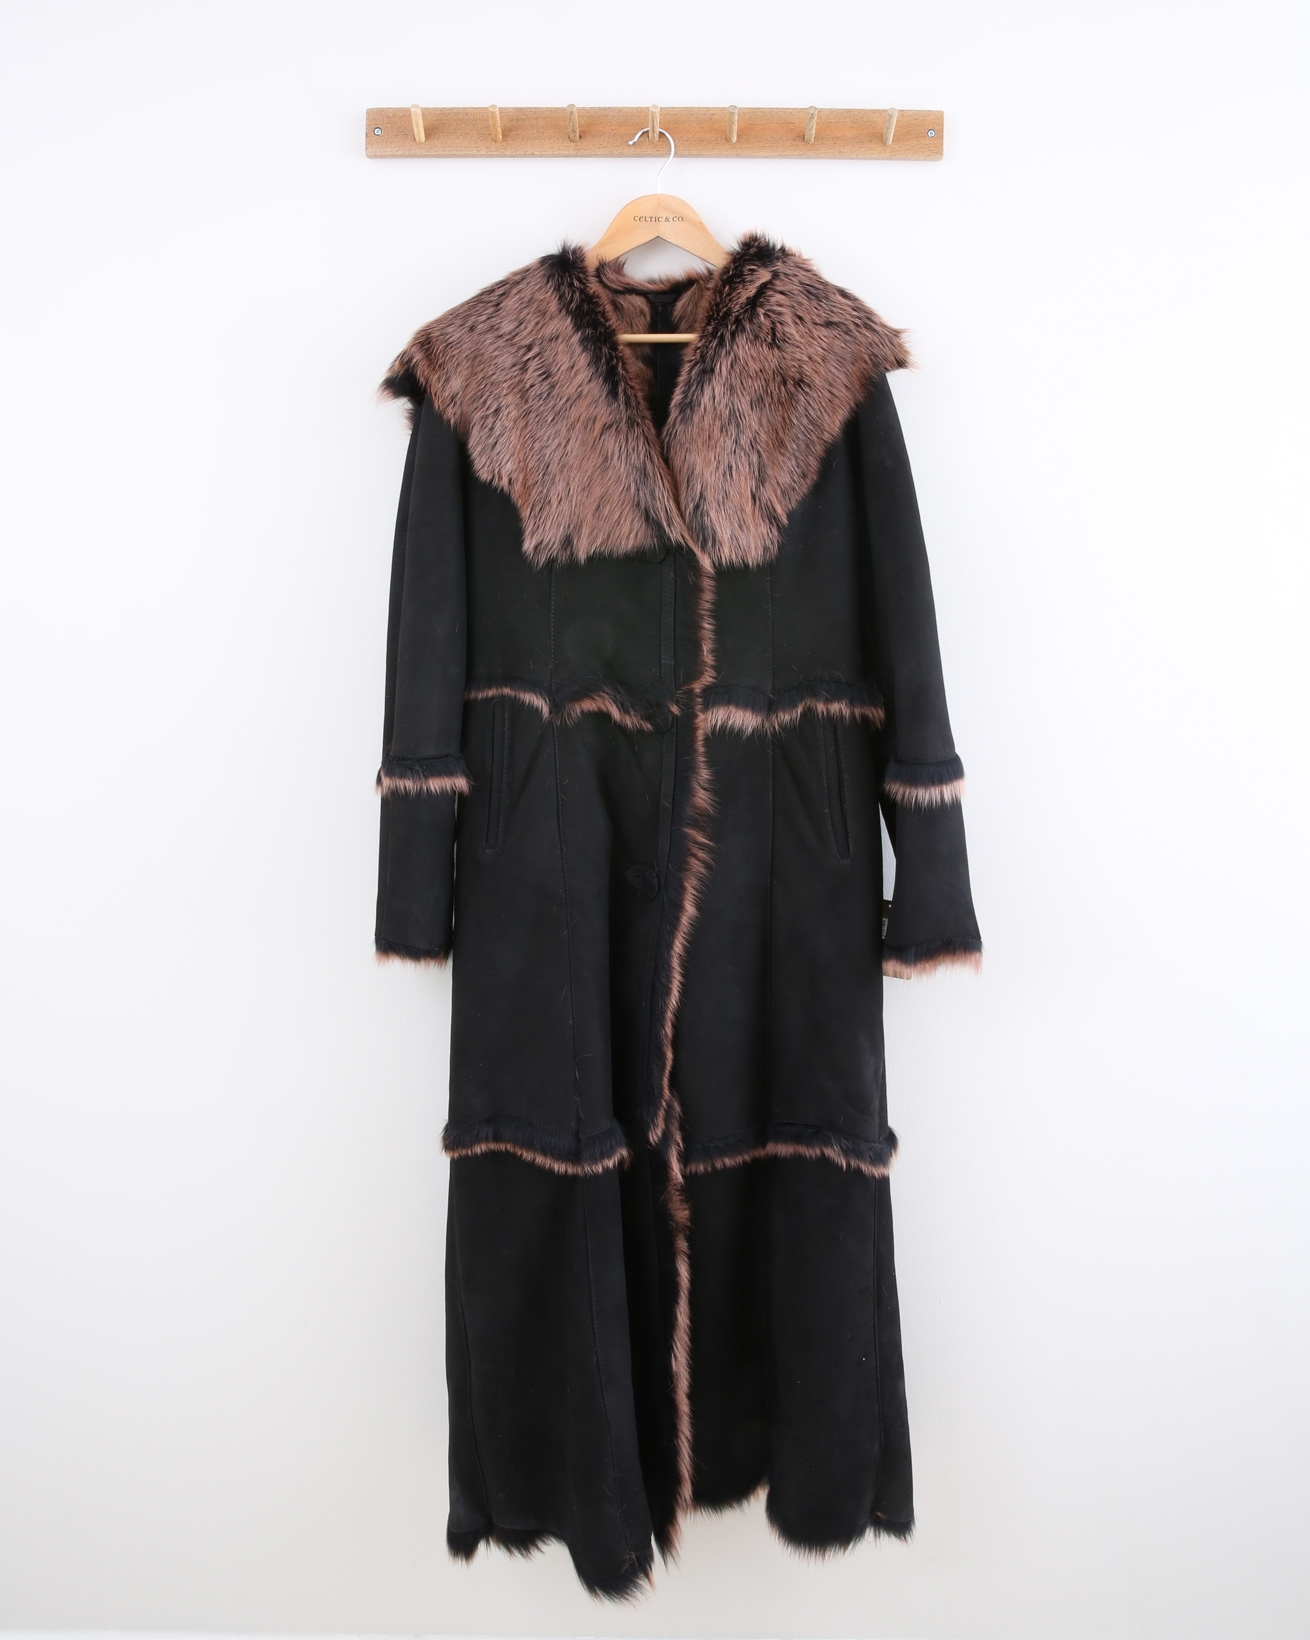 Hooded Toscana Coat - Size 10 - Black with Rust Tipping - 1474